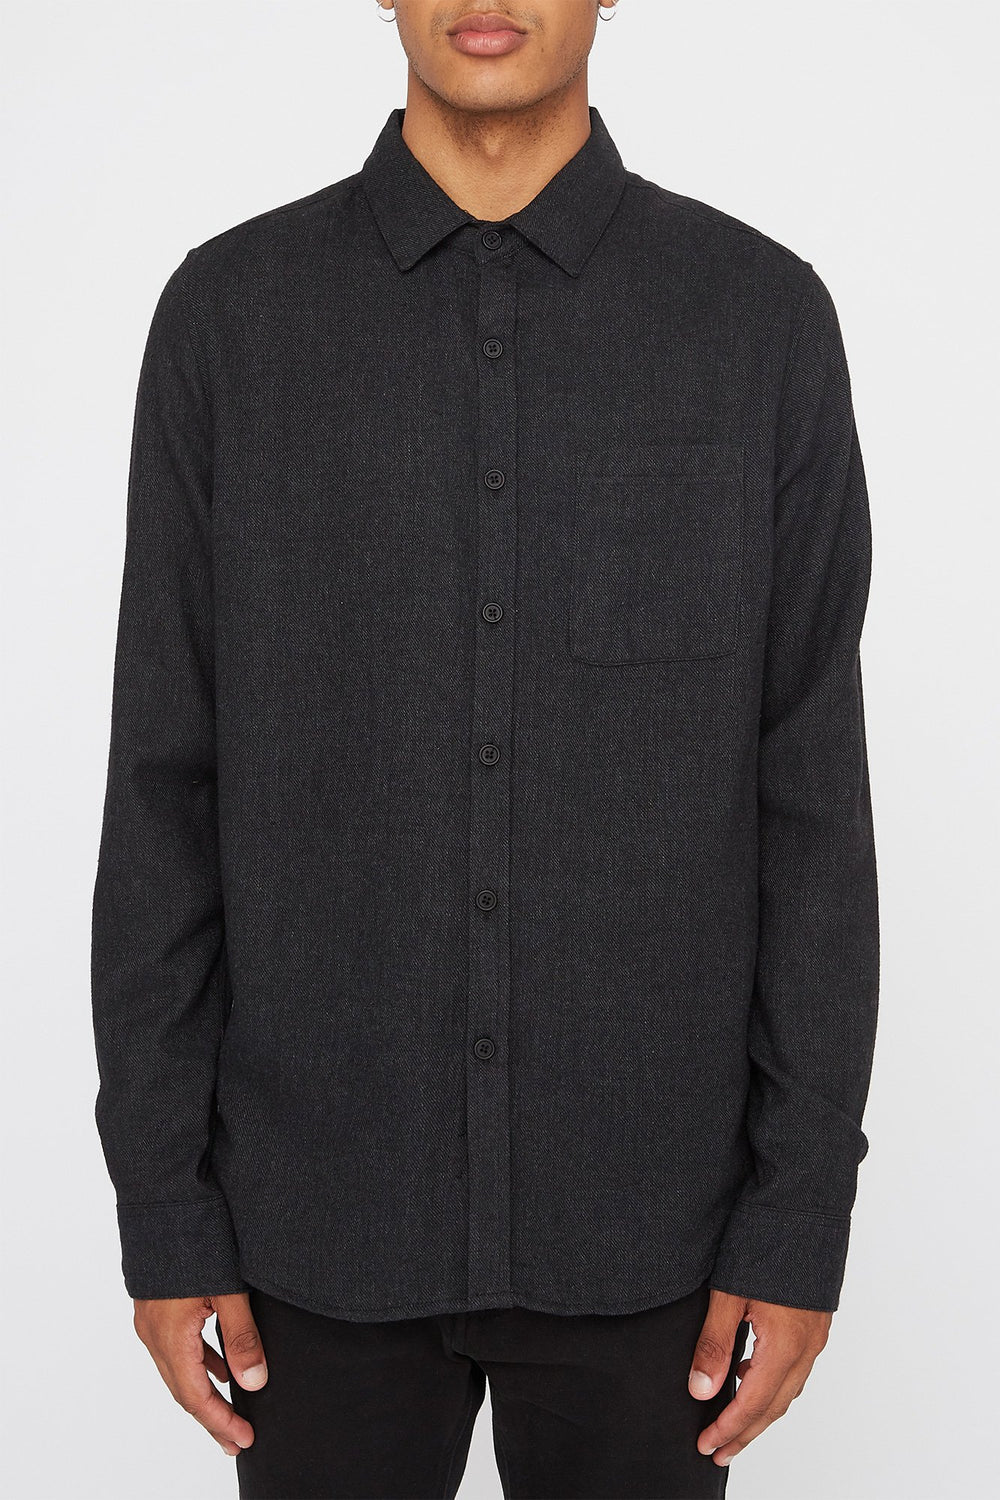 West49 Mens Flannel Button-Up Shirt Charcoal